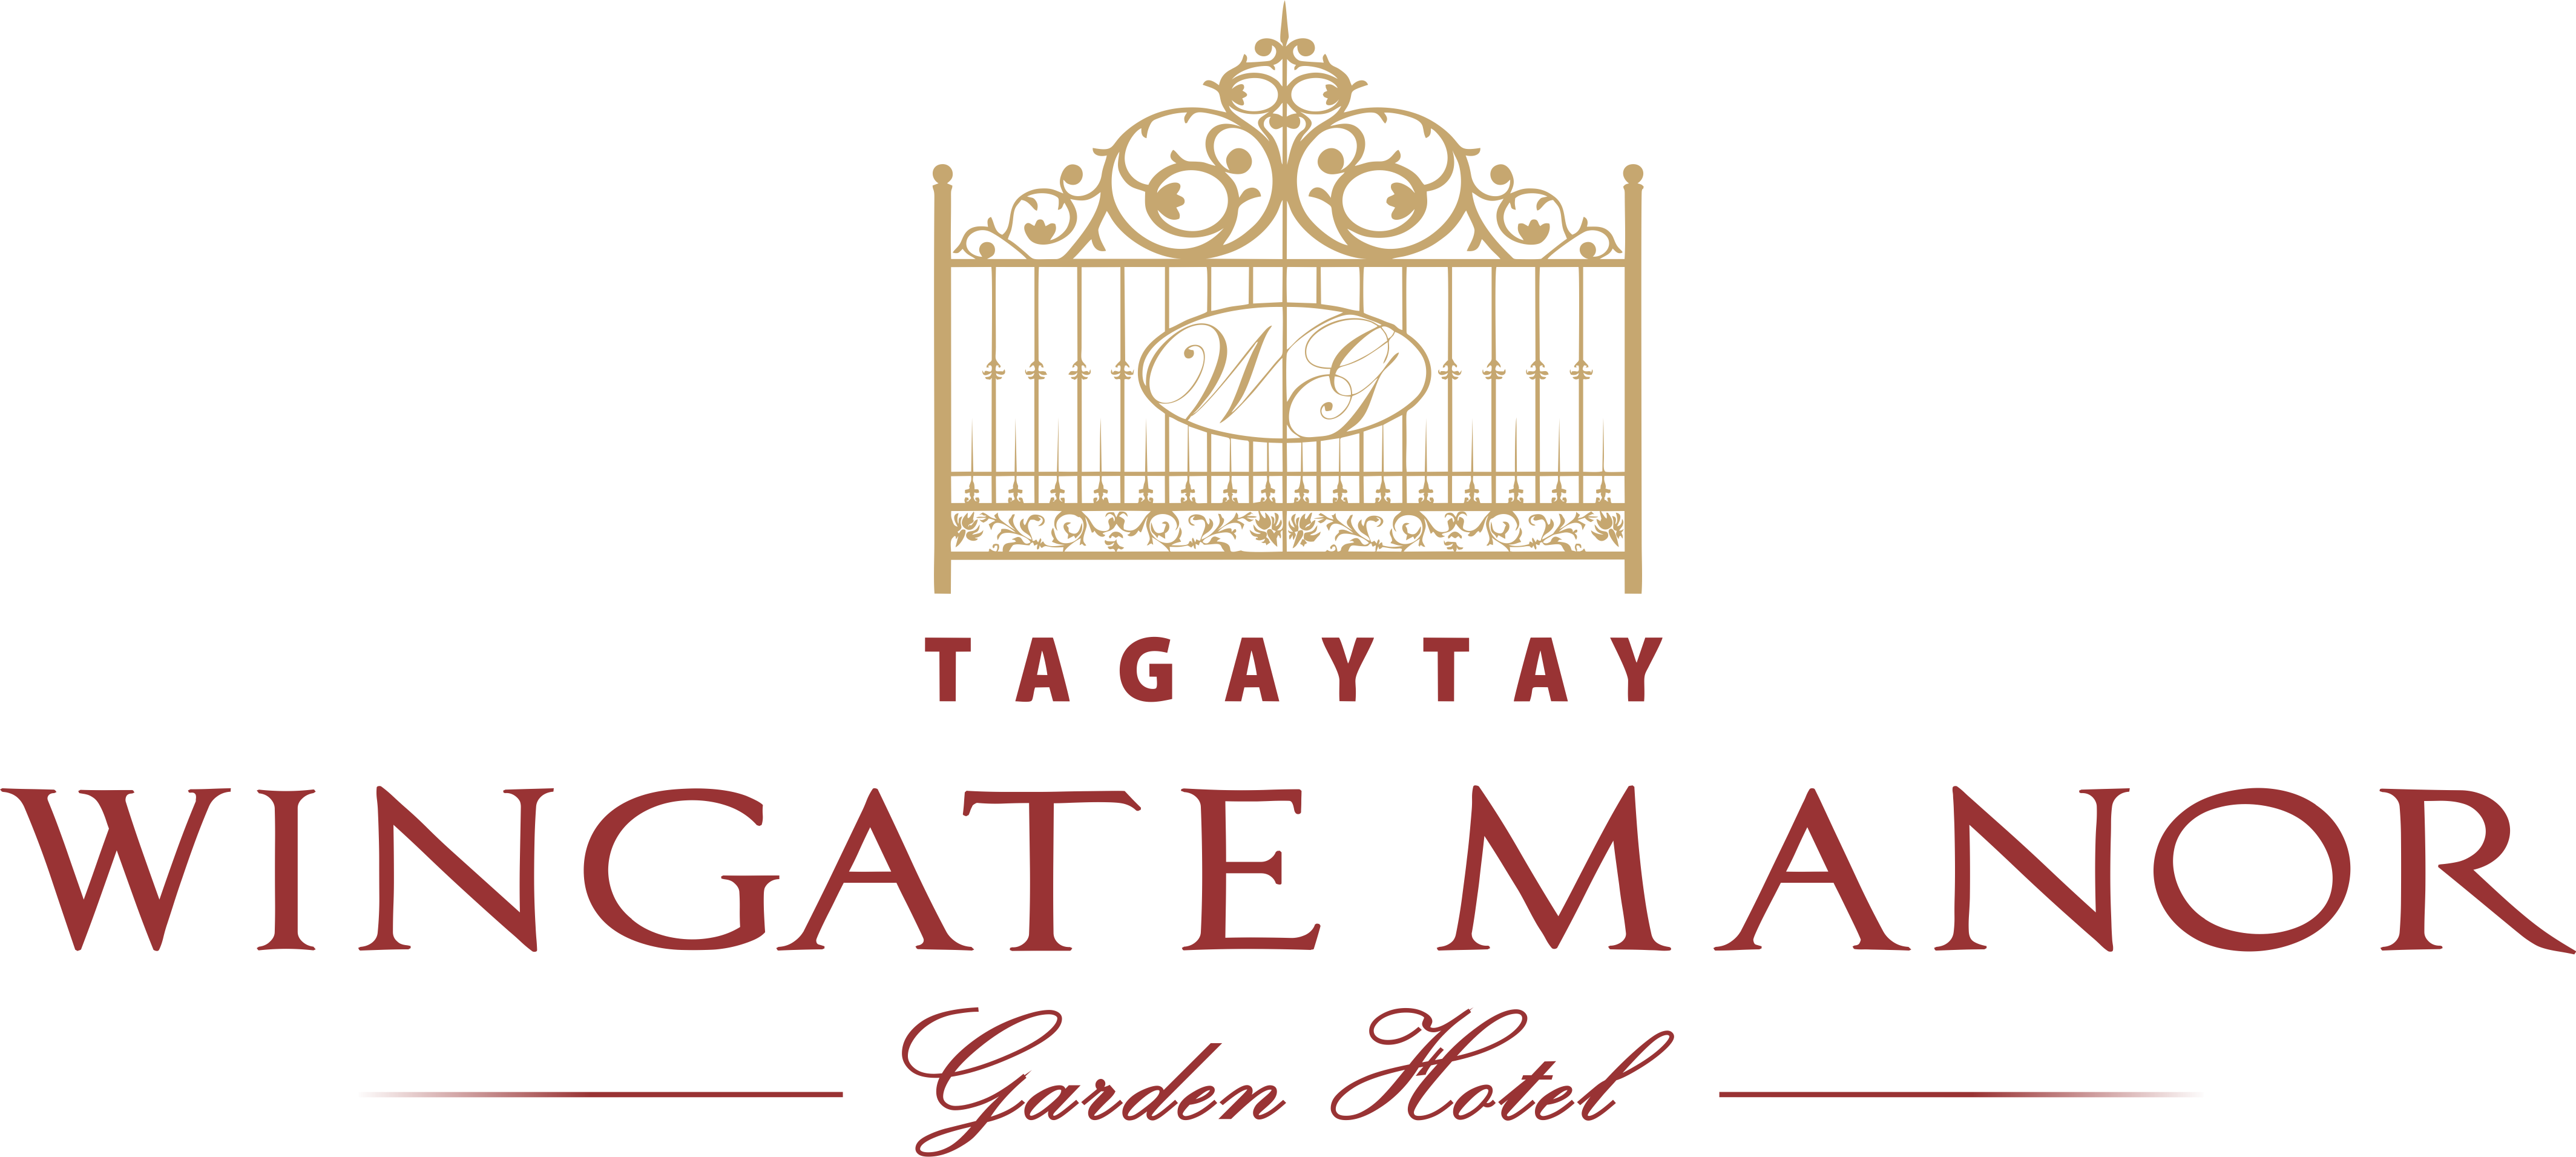 Hotel Reservation Assistant from tagaytay Wingate Manor